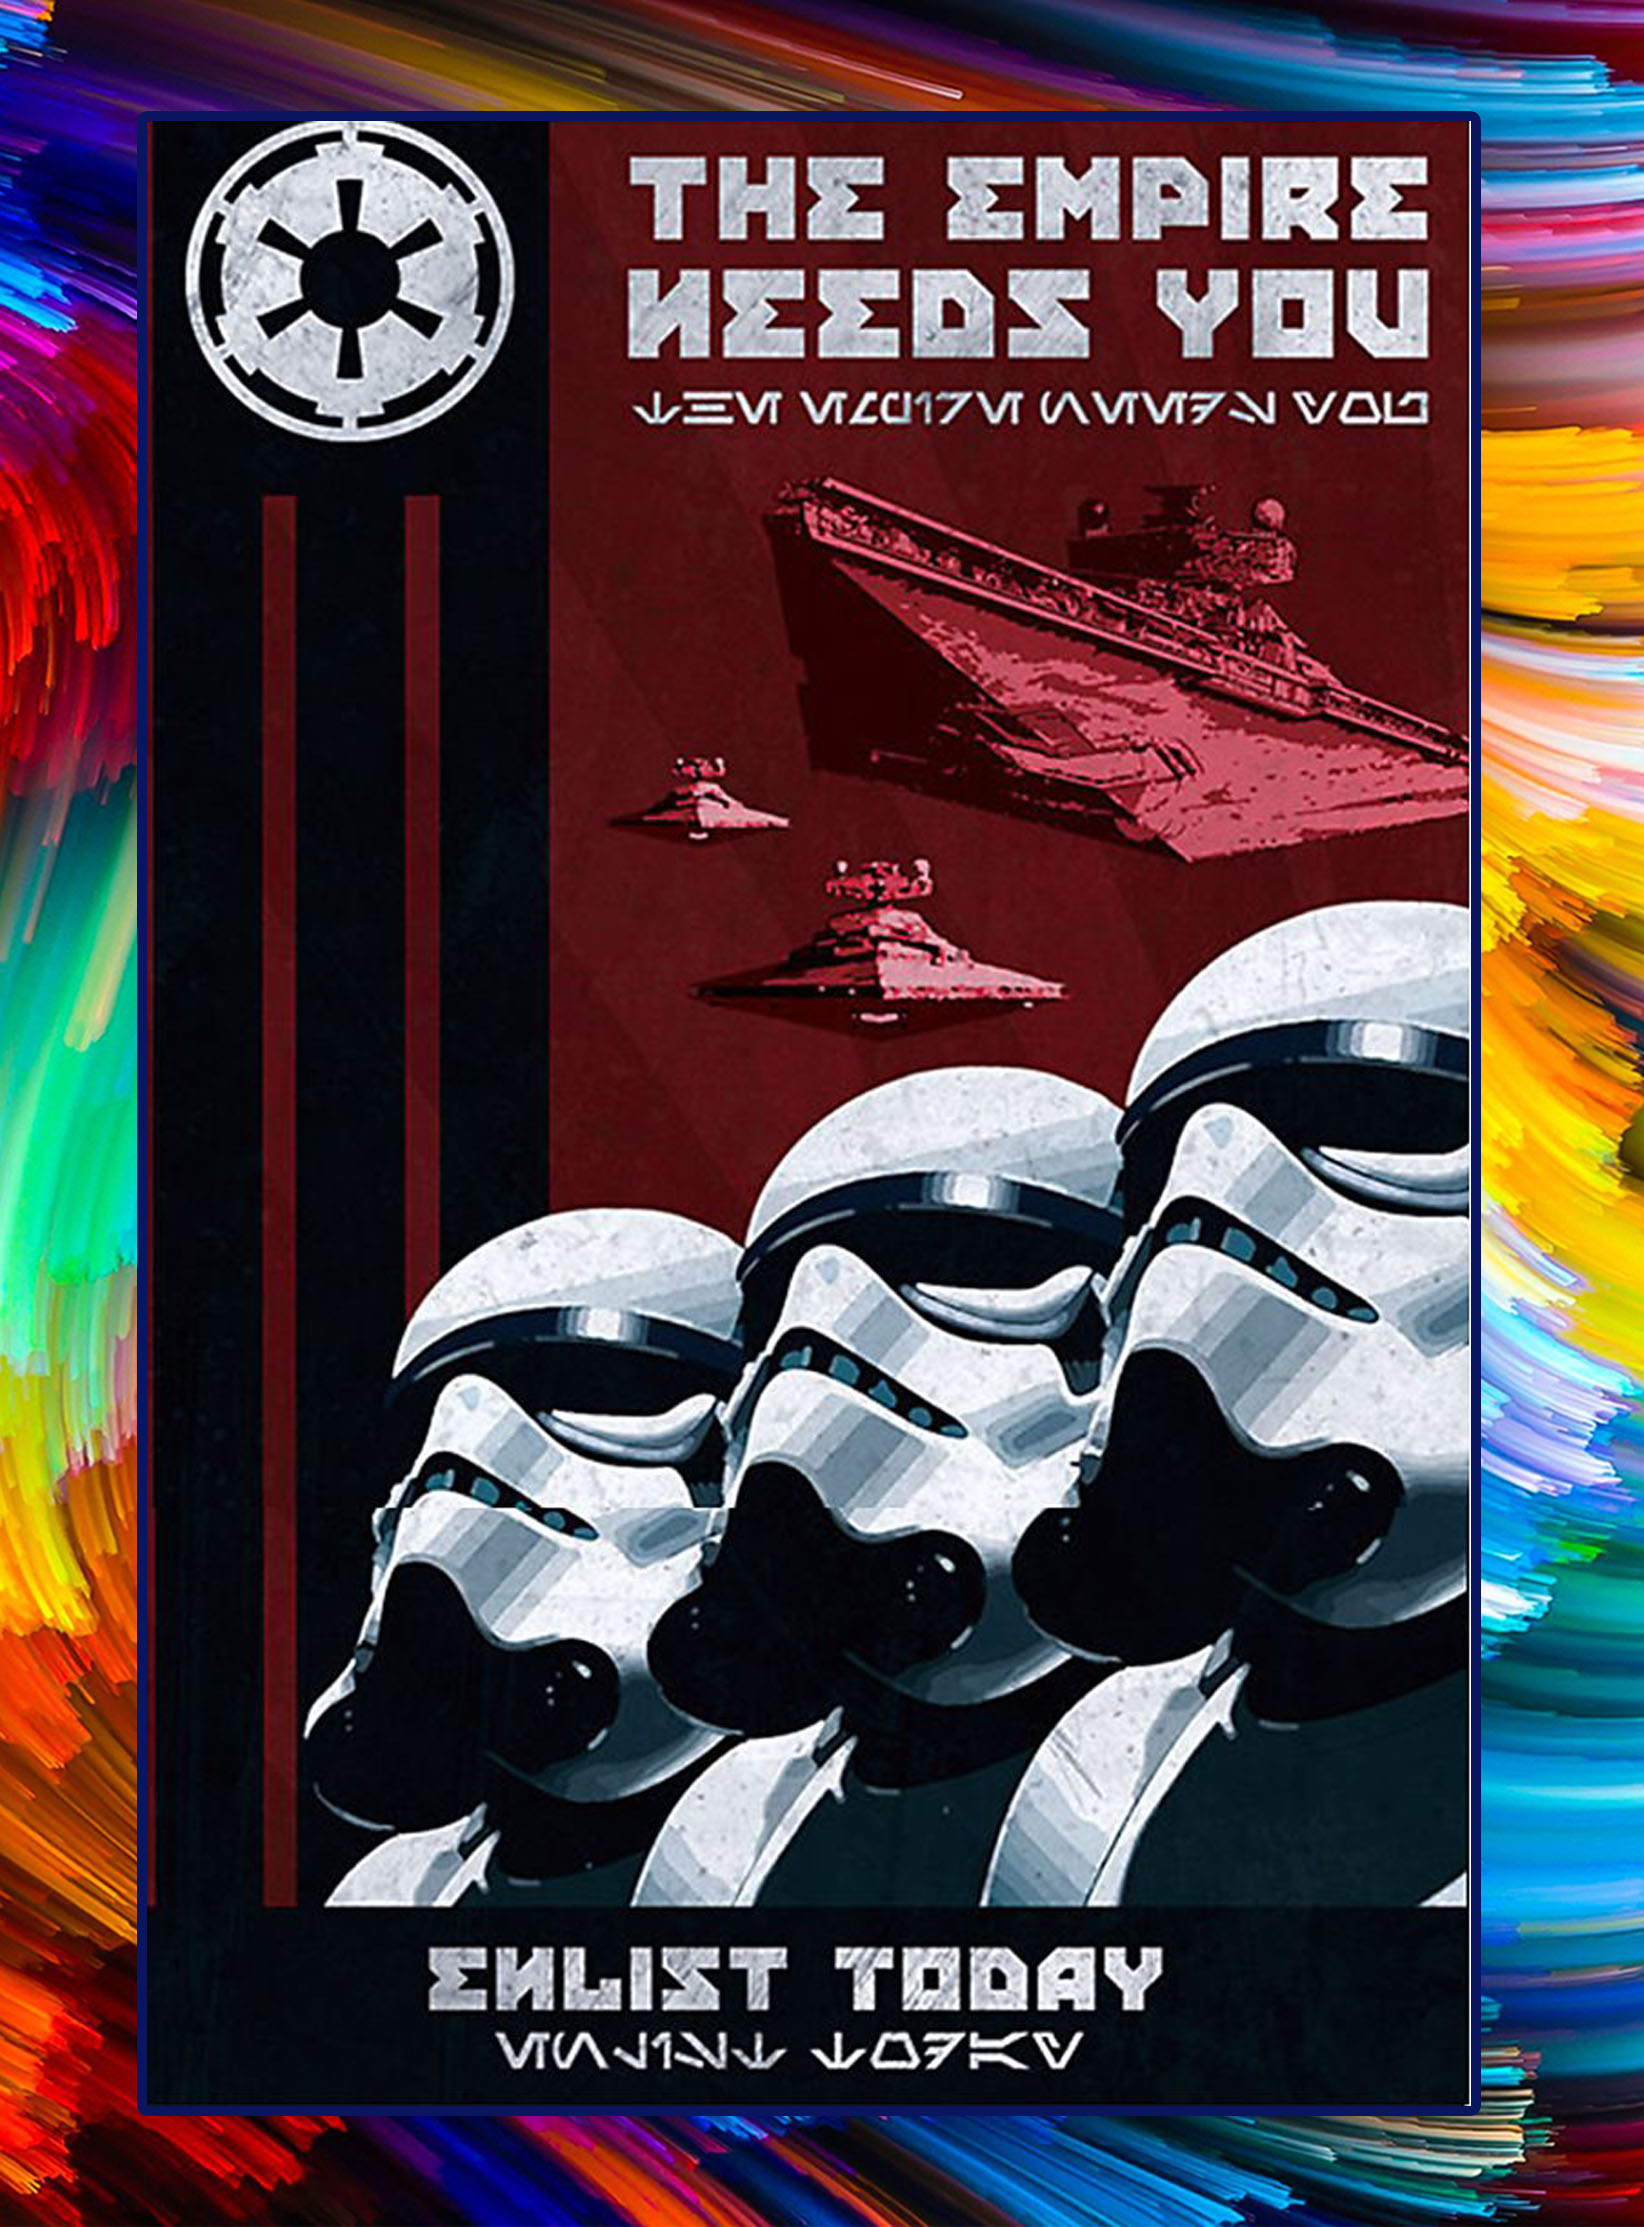 The empire needs you enlist today poster